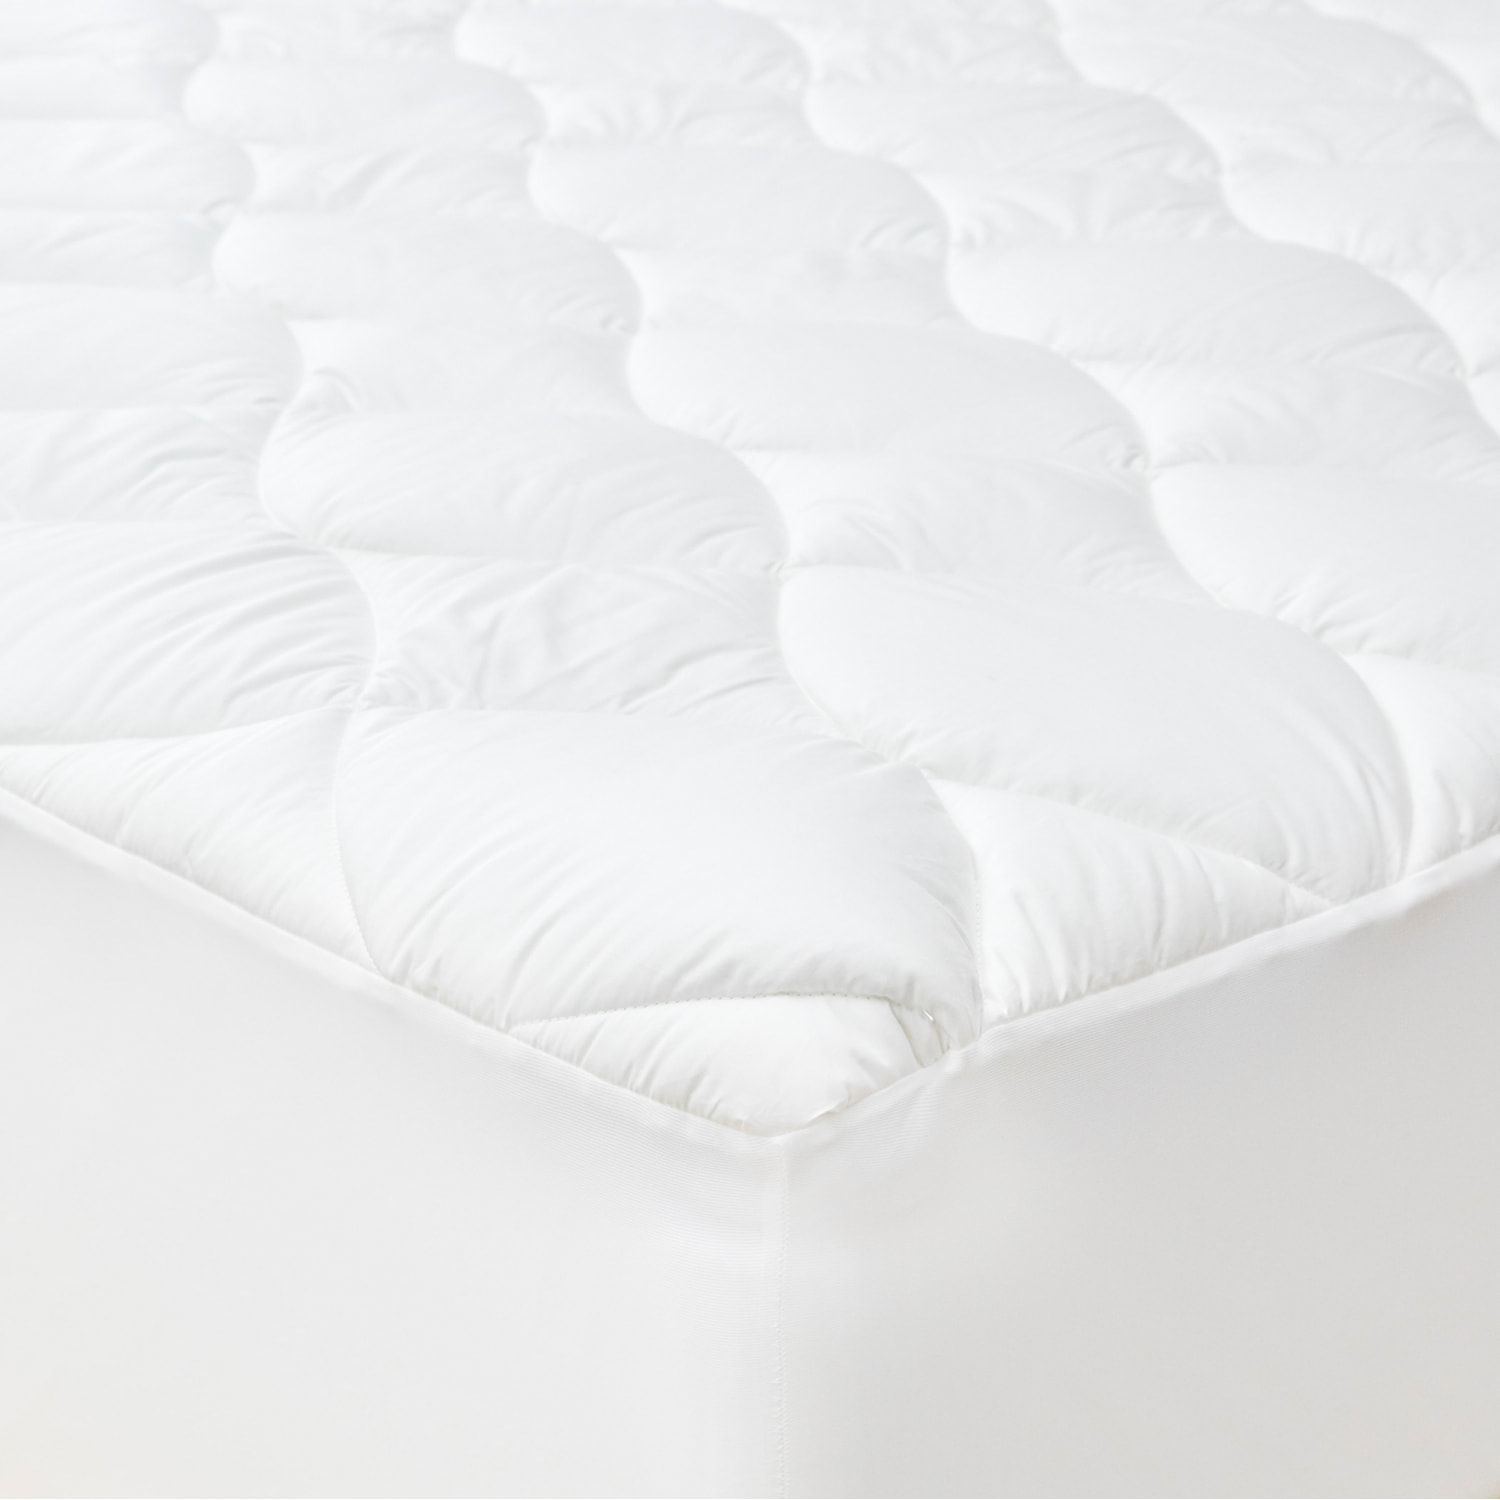 Serta Cooling Magic Gel 2 0 Mattress Pad Mattress Pad Mattress